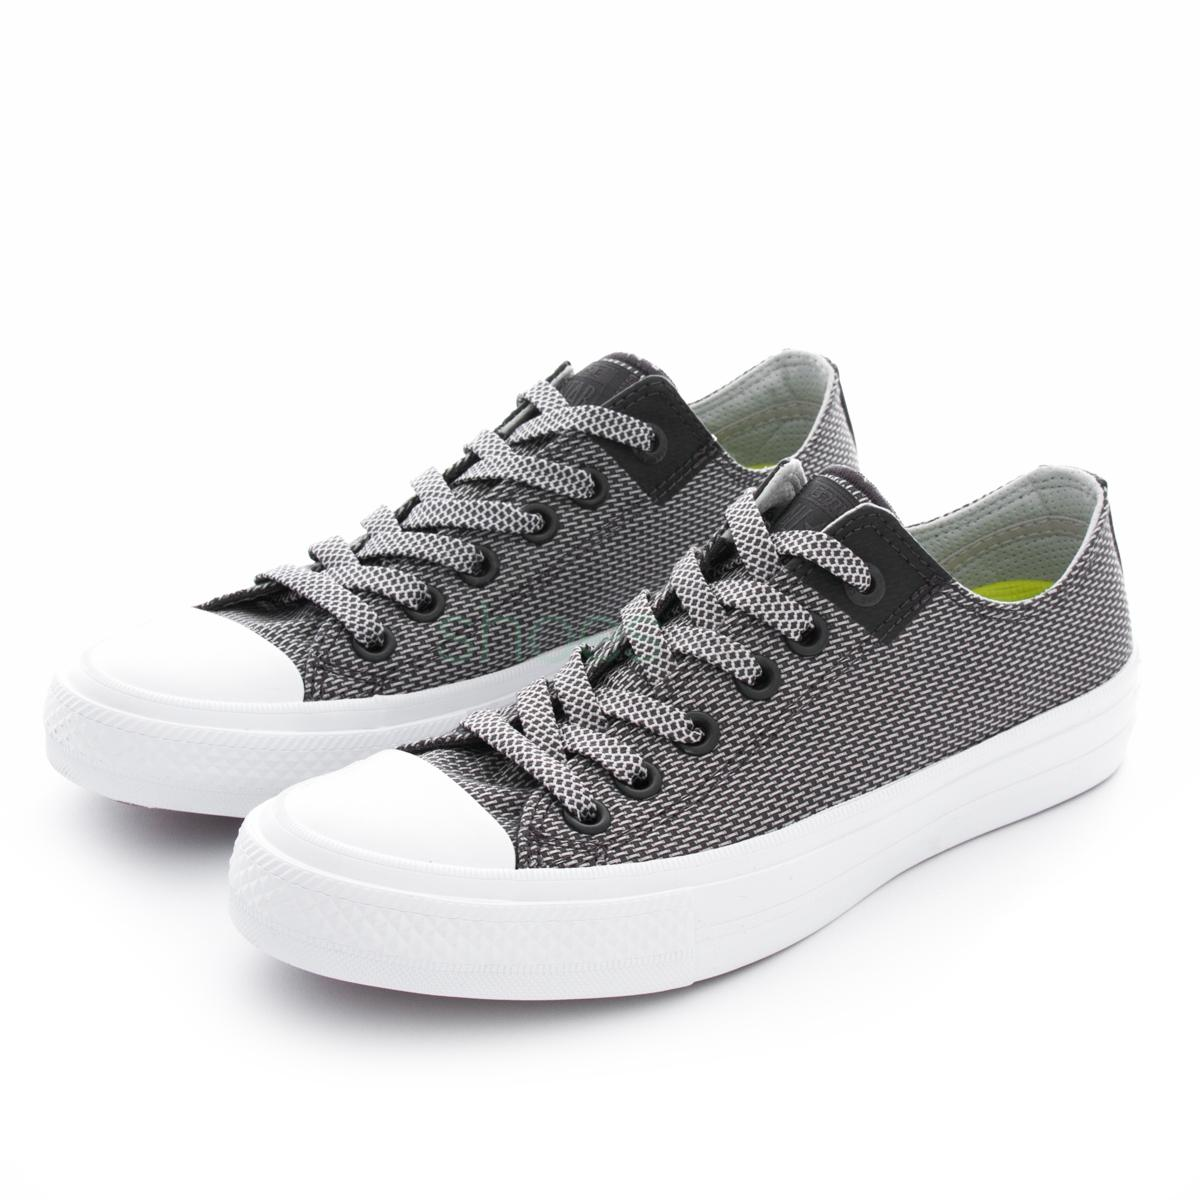 Storm Taylor Wind Mouse All Sneakers Chuck 155539c Star Converse 1FK3lcTJ